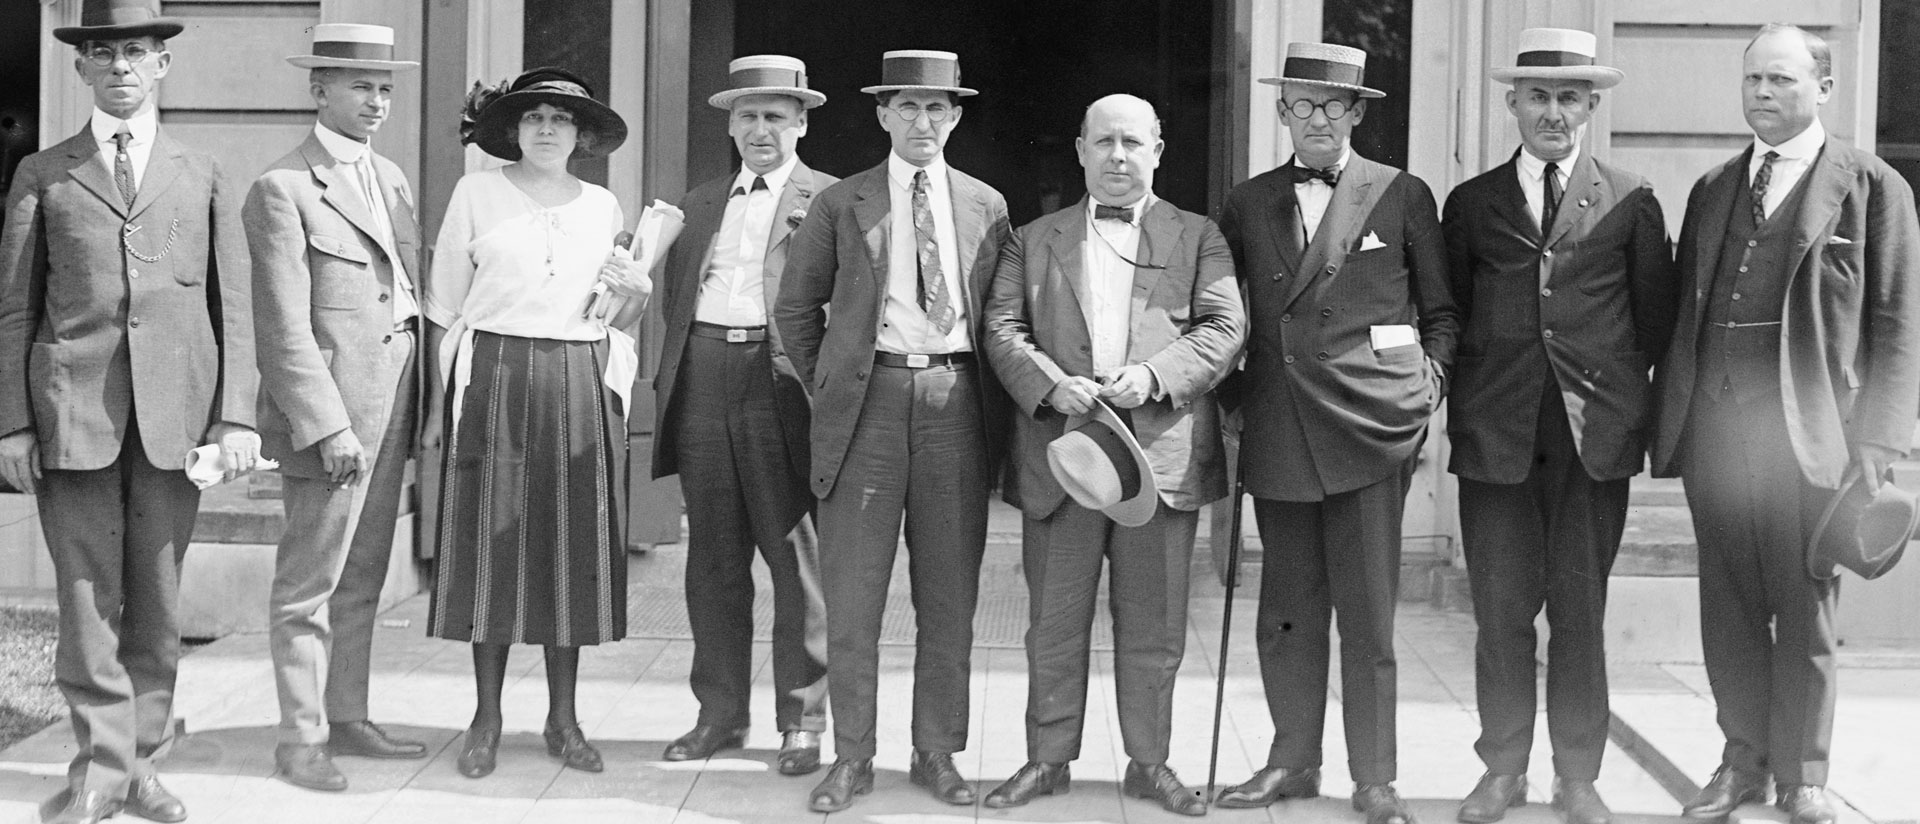 Prohibition Group, September, 1922. Print From Glass Negative. National Photo Company Collection, Library Of Congress. Call Number LC-F81-20369